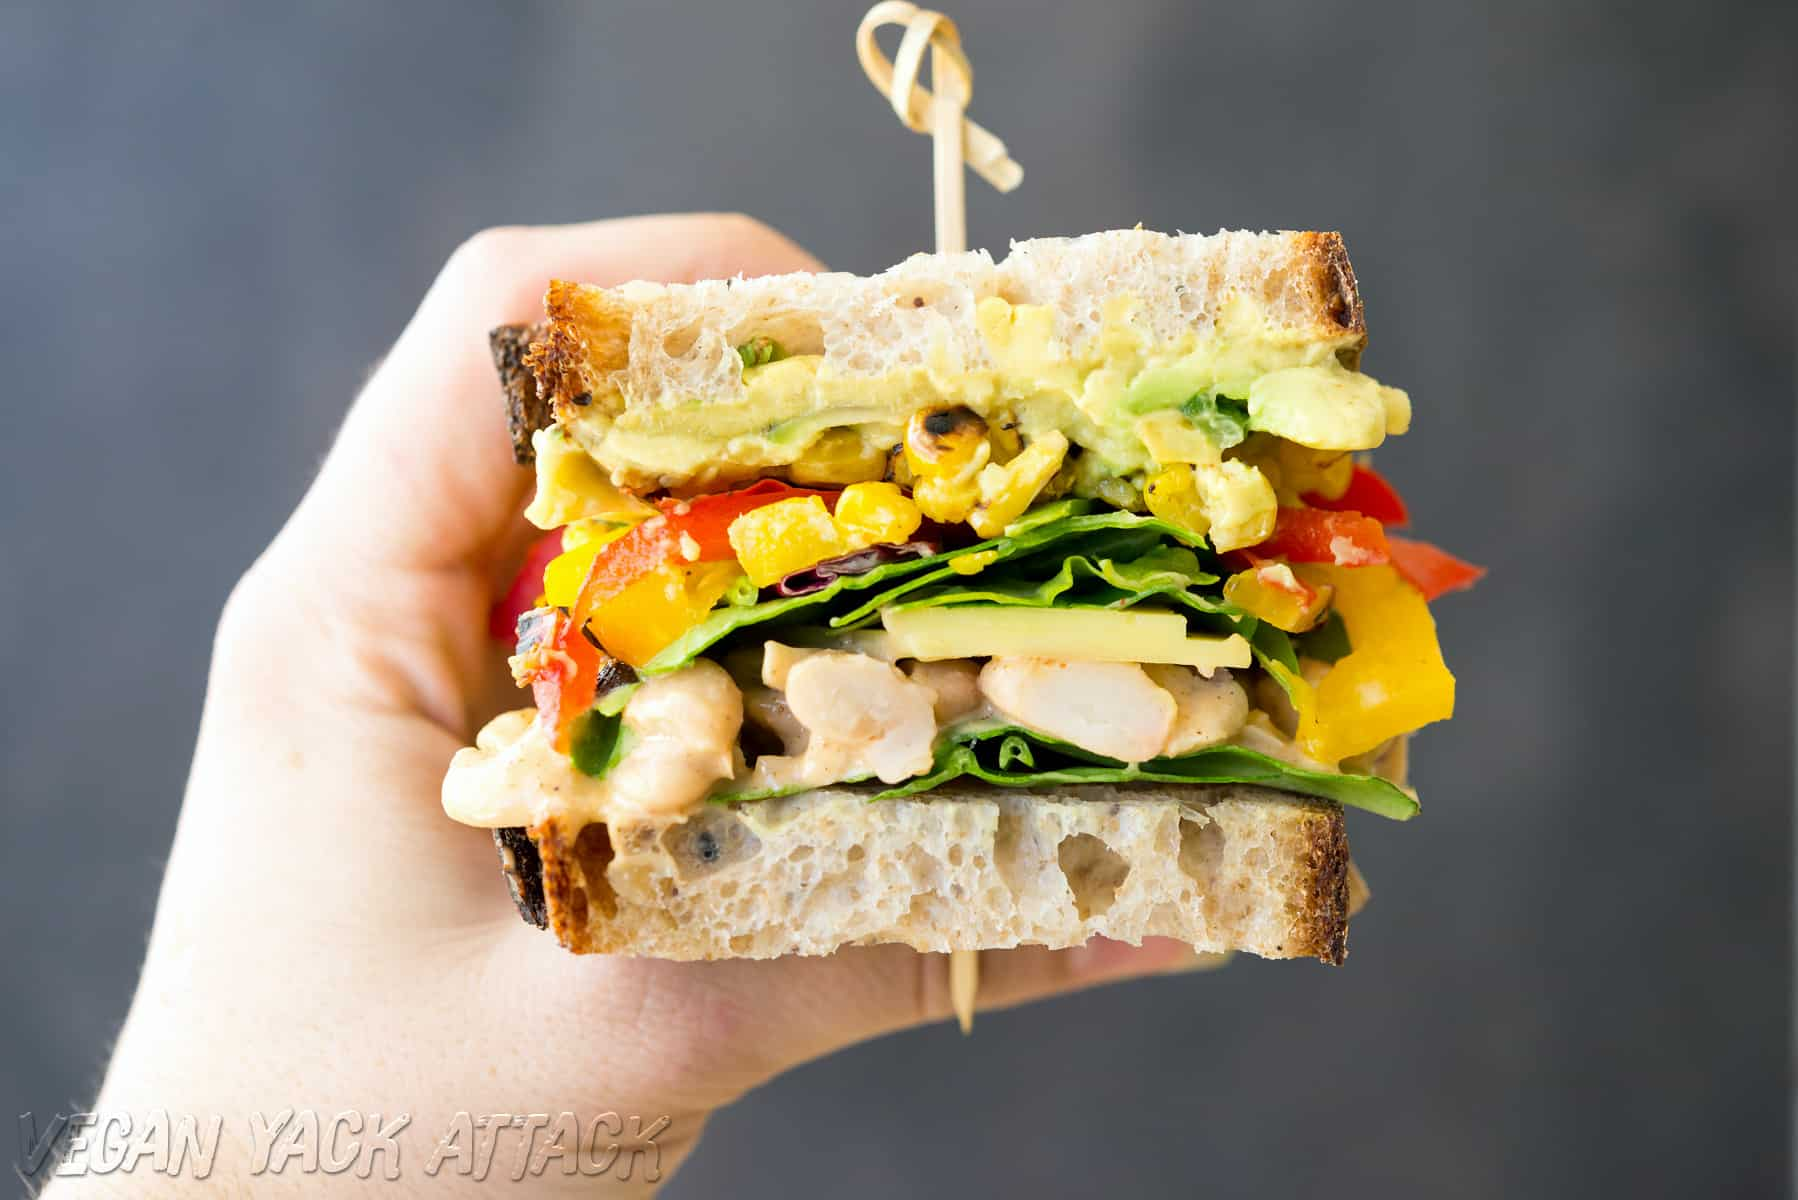 Chipotle White Bean Salad Sandwich - Super flavorful, #vegan and soy-free!